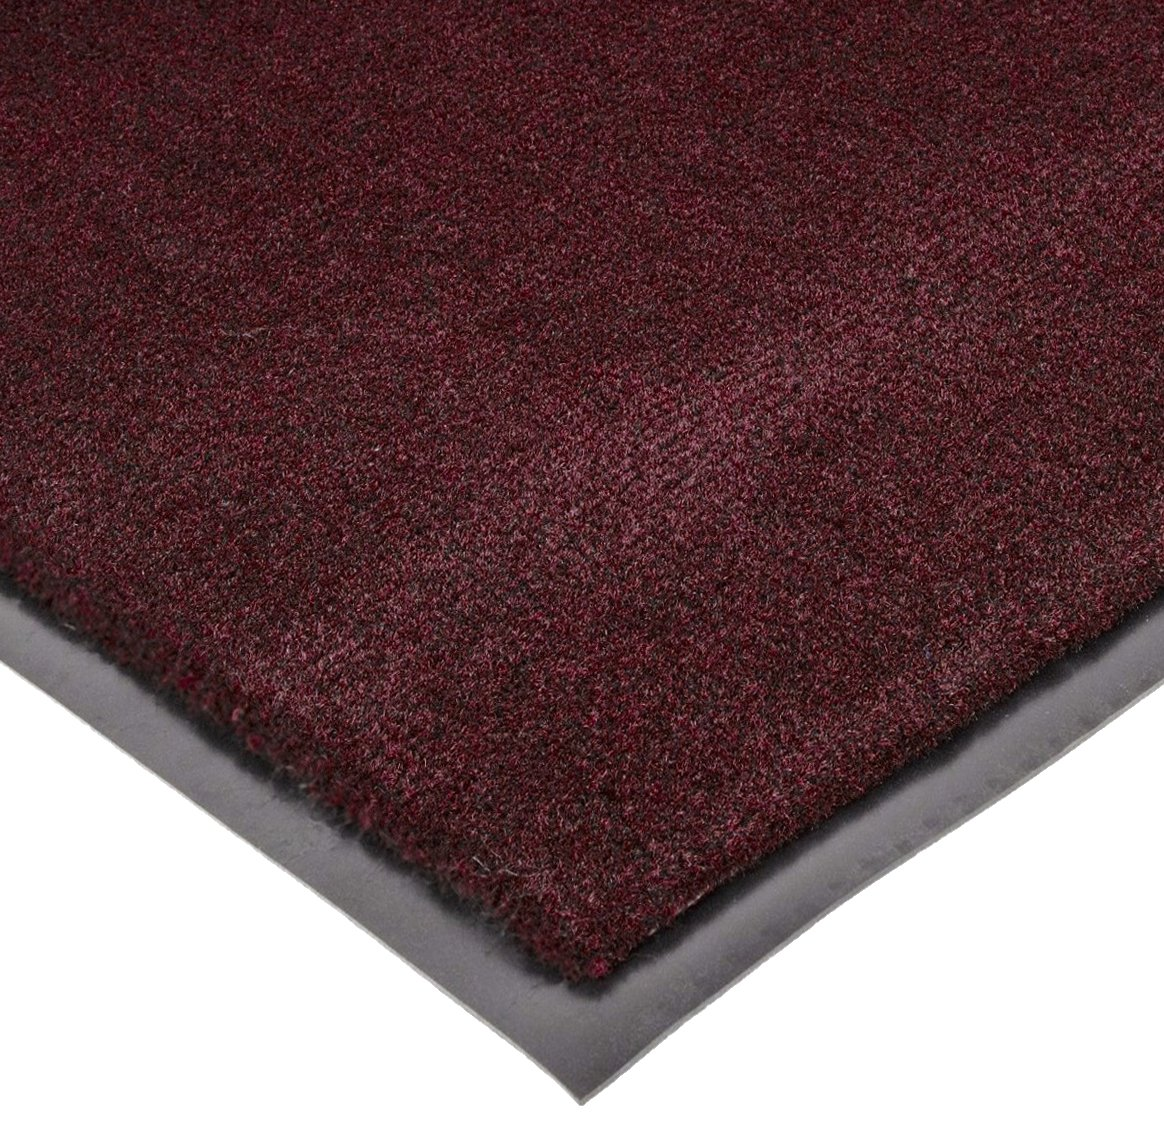 Notrax 130 Sabre Decalon Entrance Mat, for Entranceways and Light to Medium Traffic Areas, 3' Width x 10' Length x 5/16'' Thickness, Burgundy